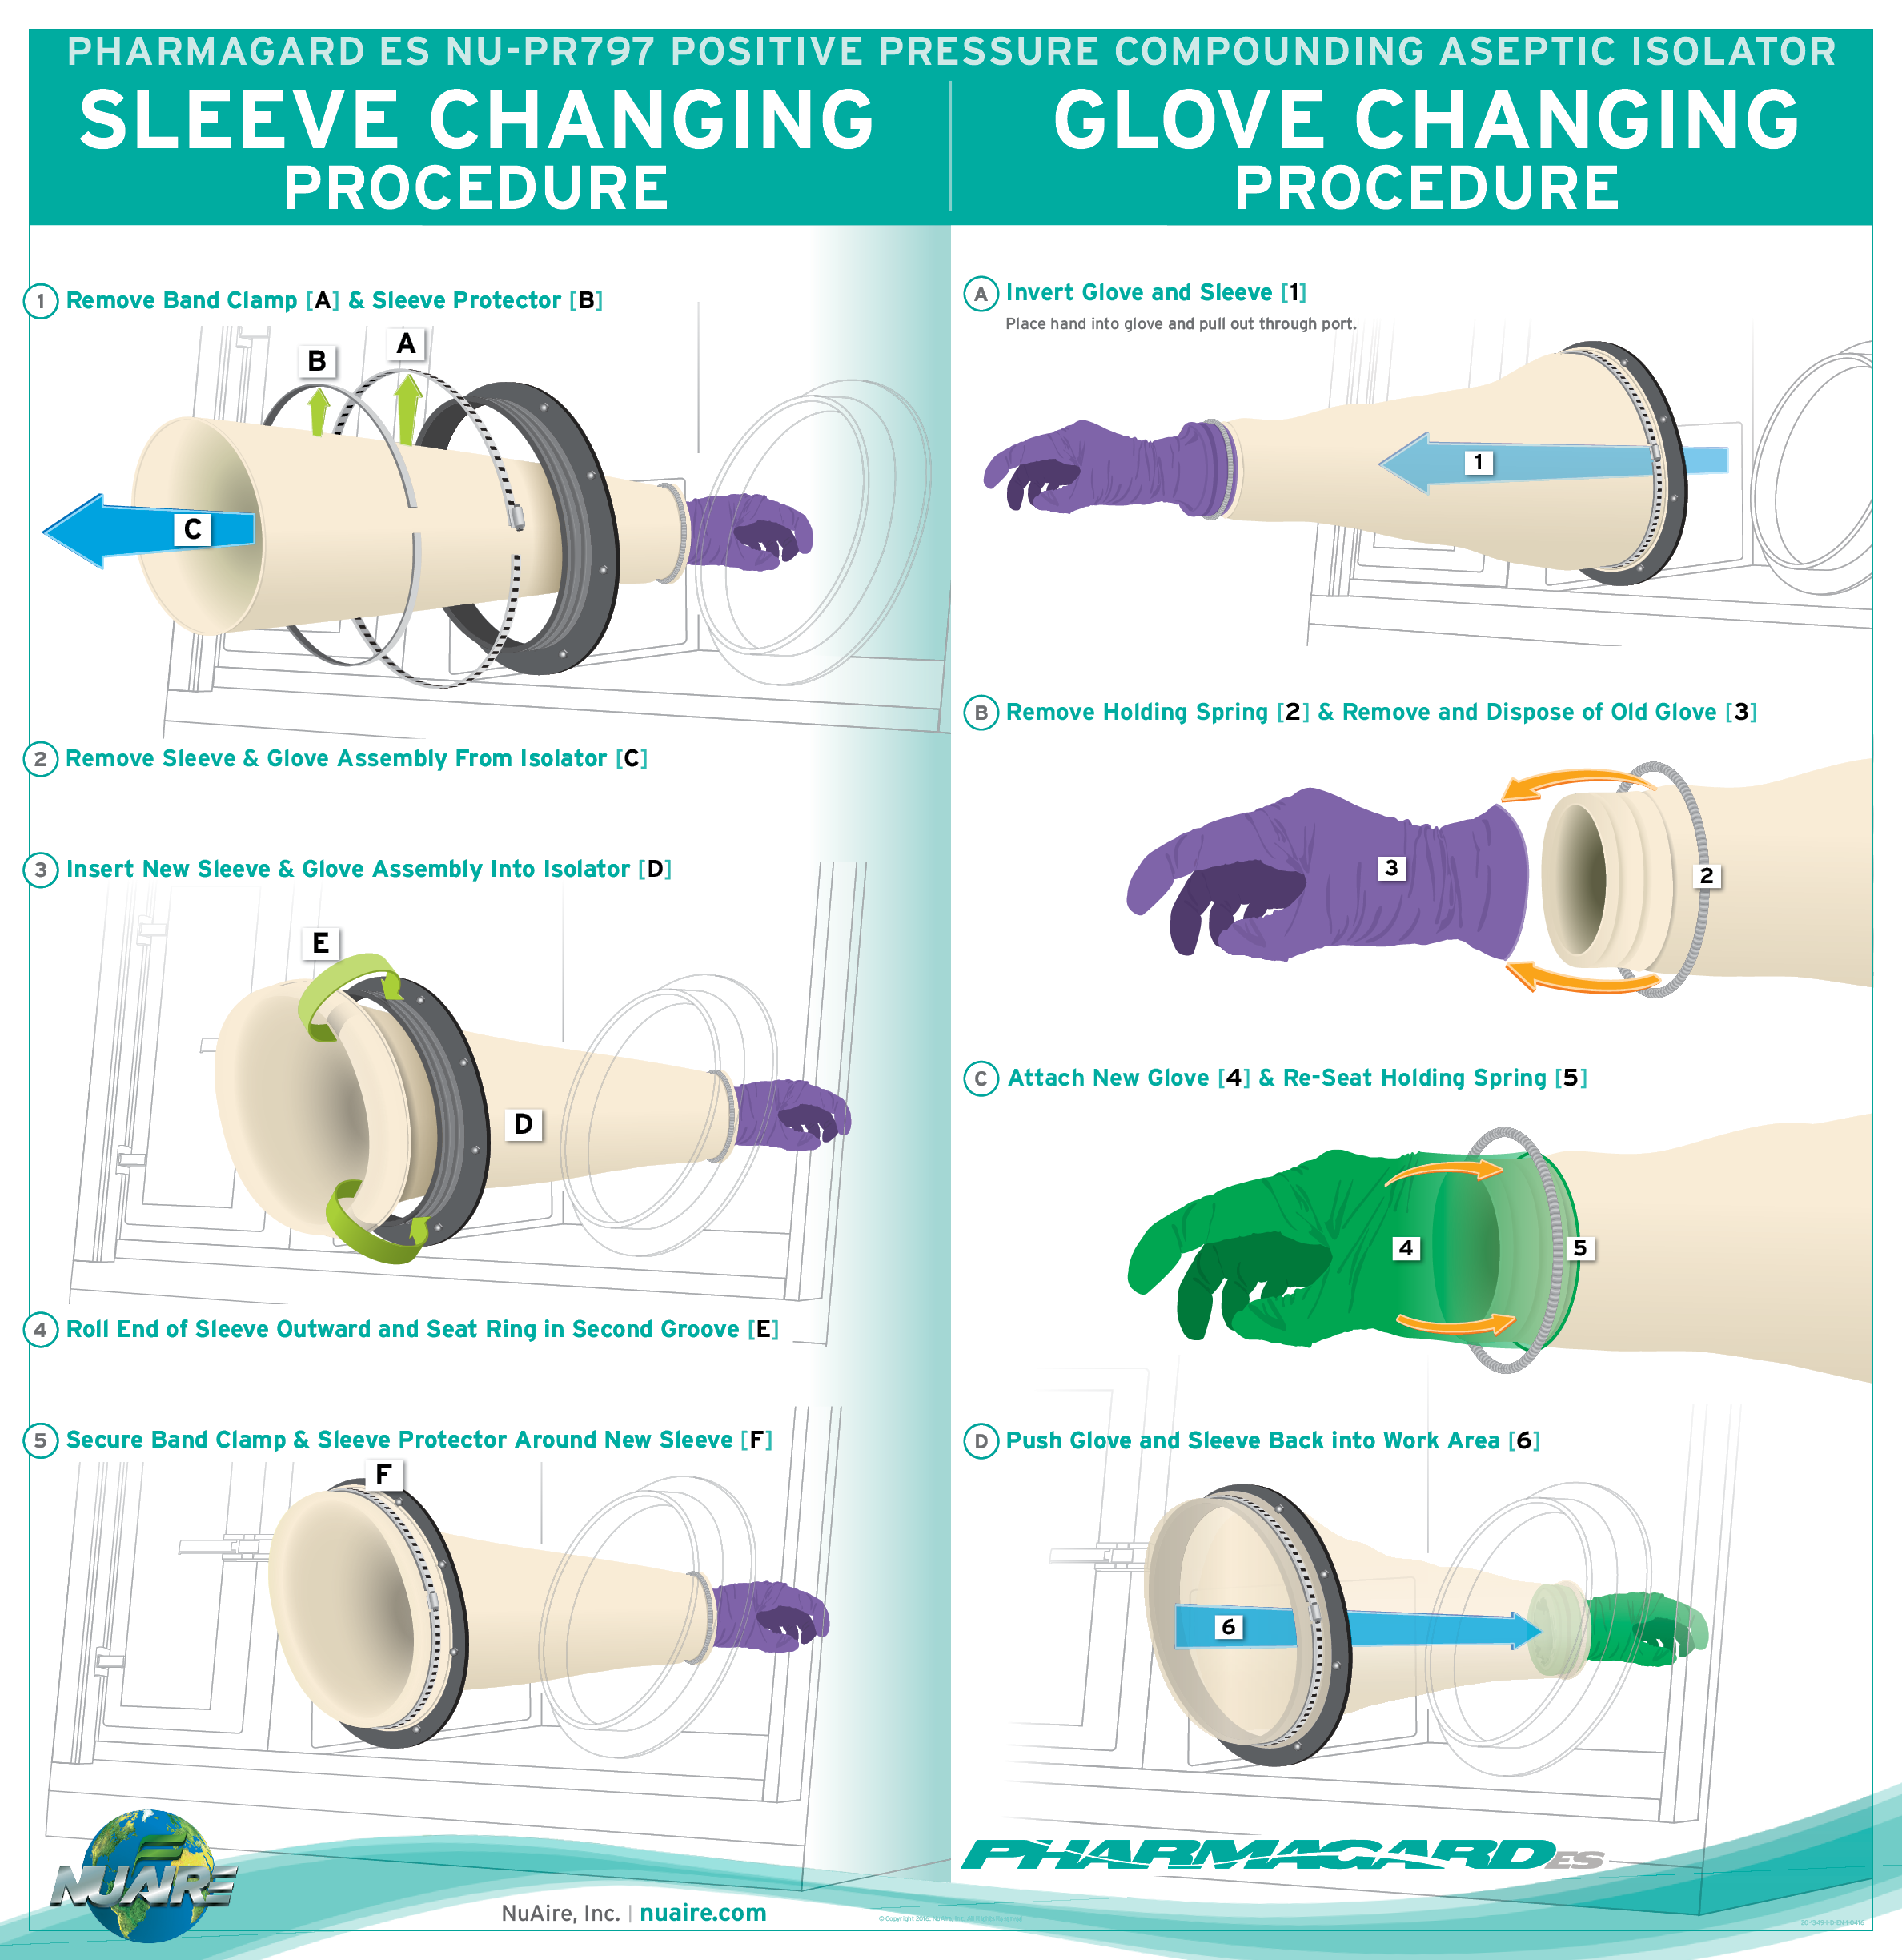 CAI Glove and Sleeve Changing Procedure